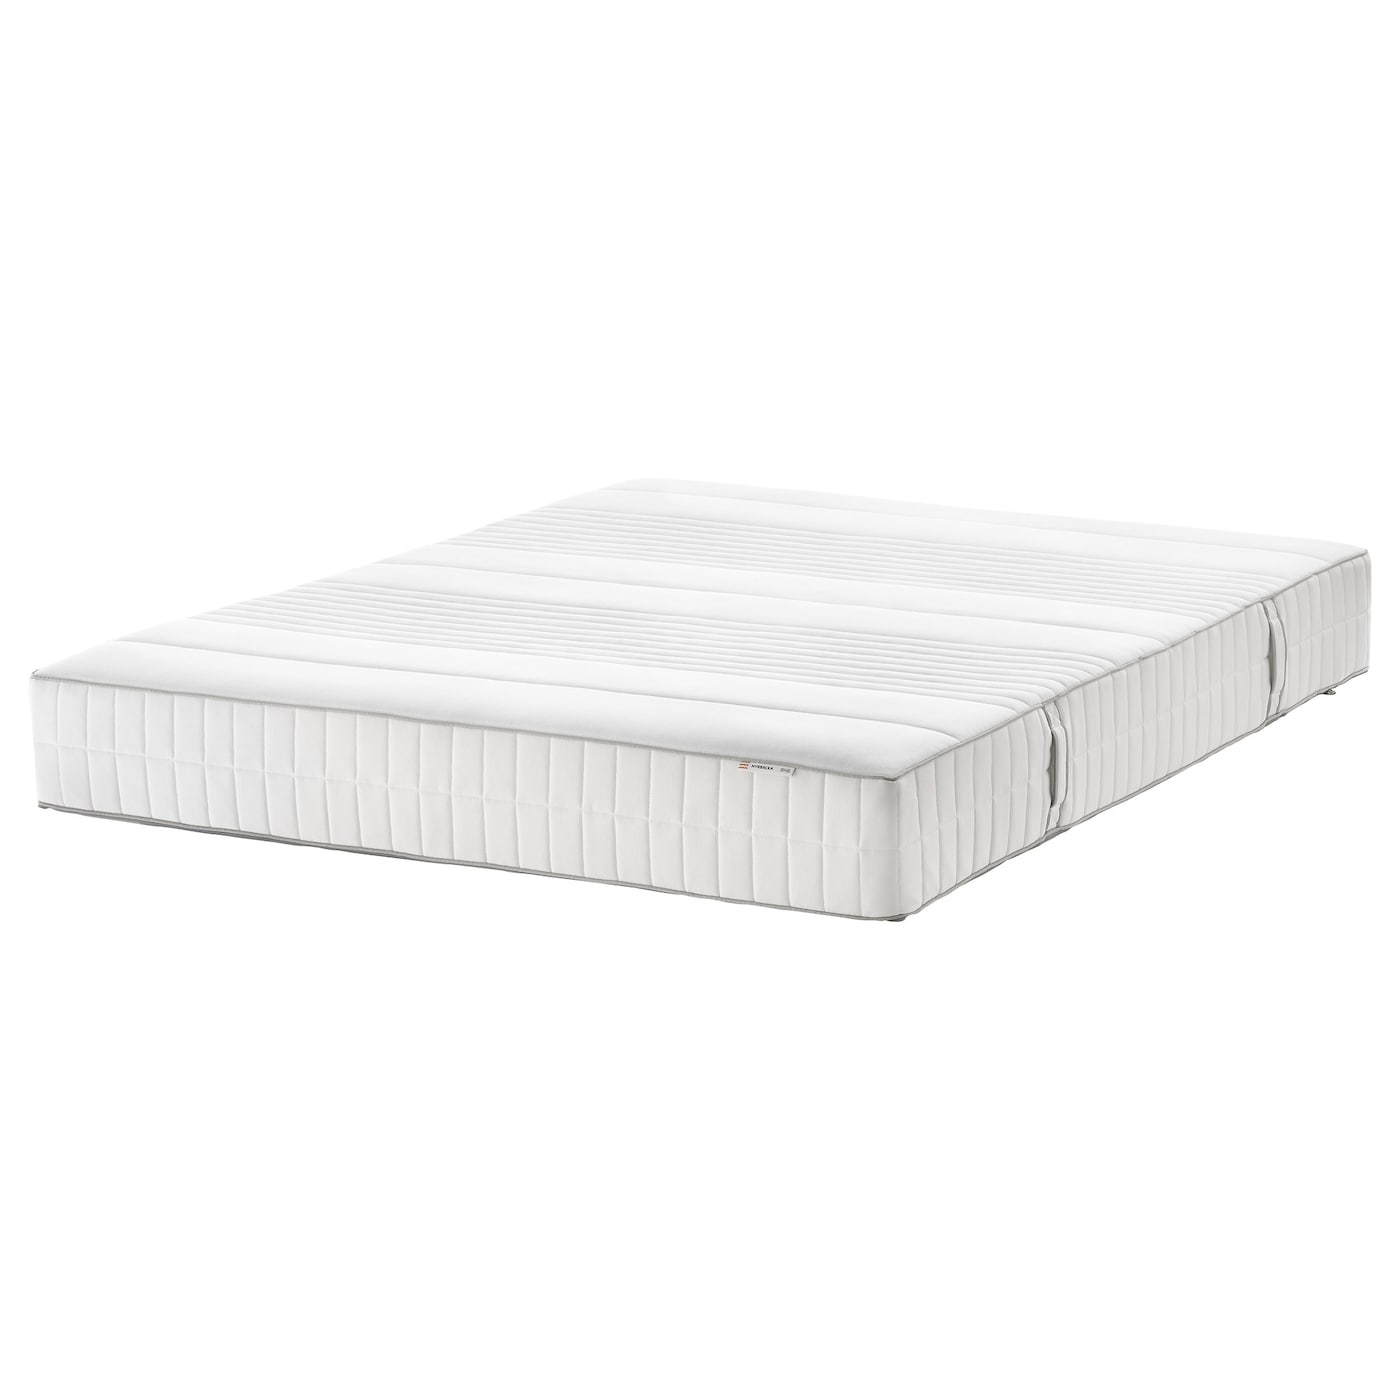 myrbacka matelas latex mi ferme blanc 160x200 cm ikea. Black Bedroom Furniture Sets. Home Design Ideas